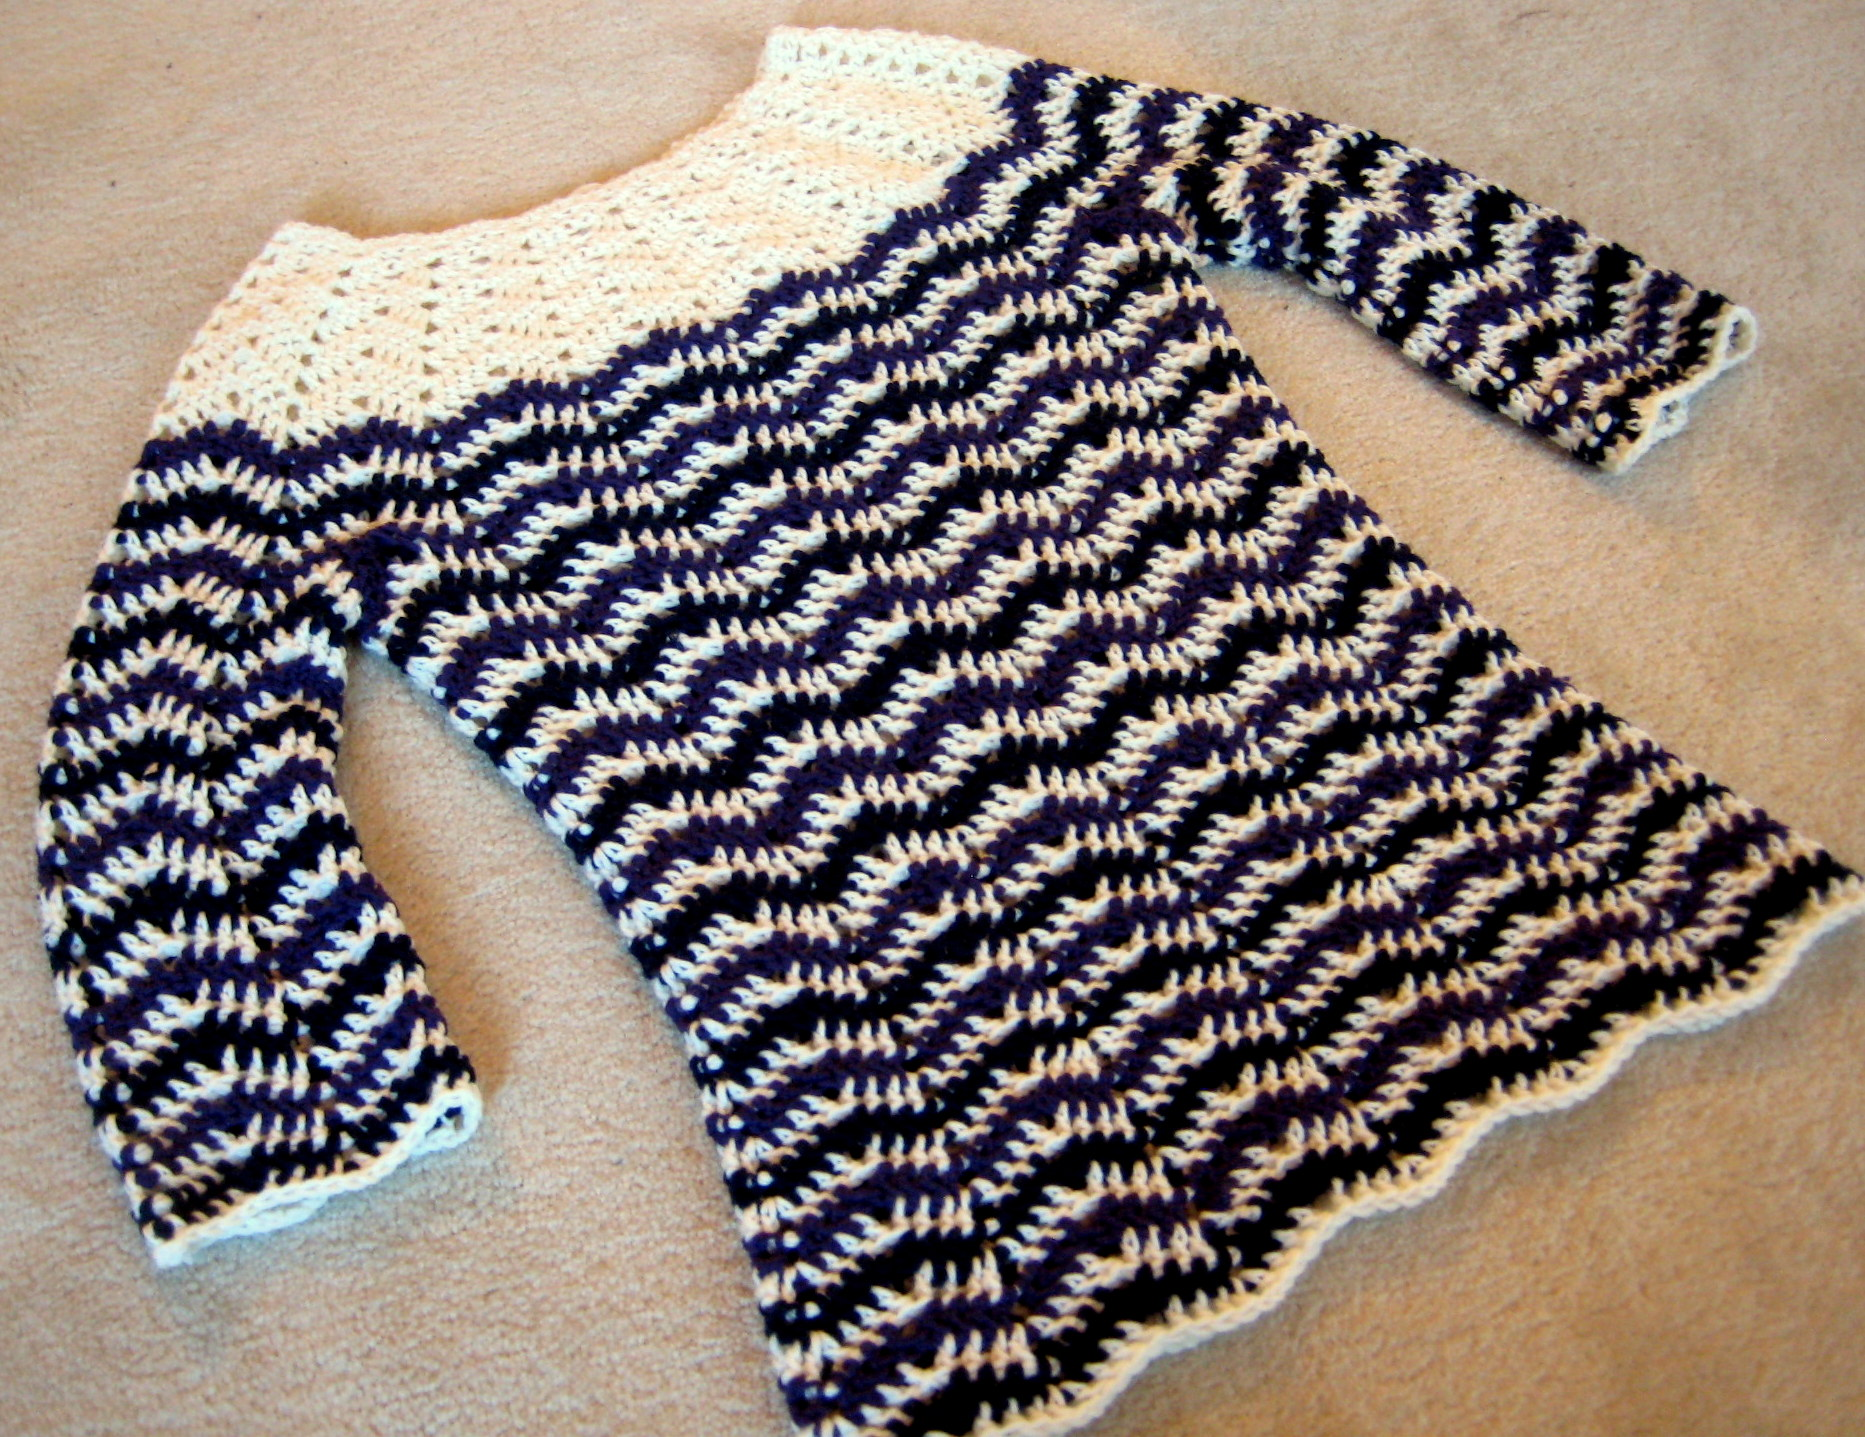 Chevron stripes 3-season sweater | Make My Day Creative